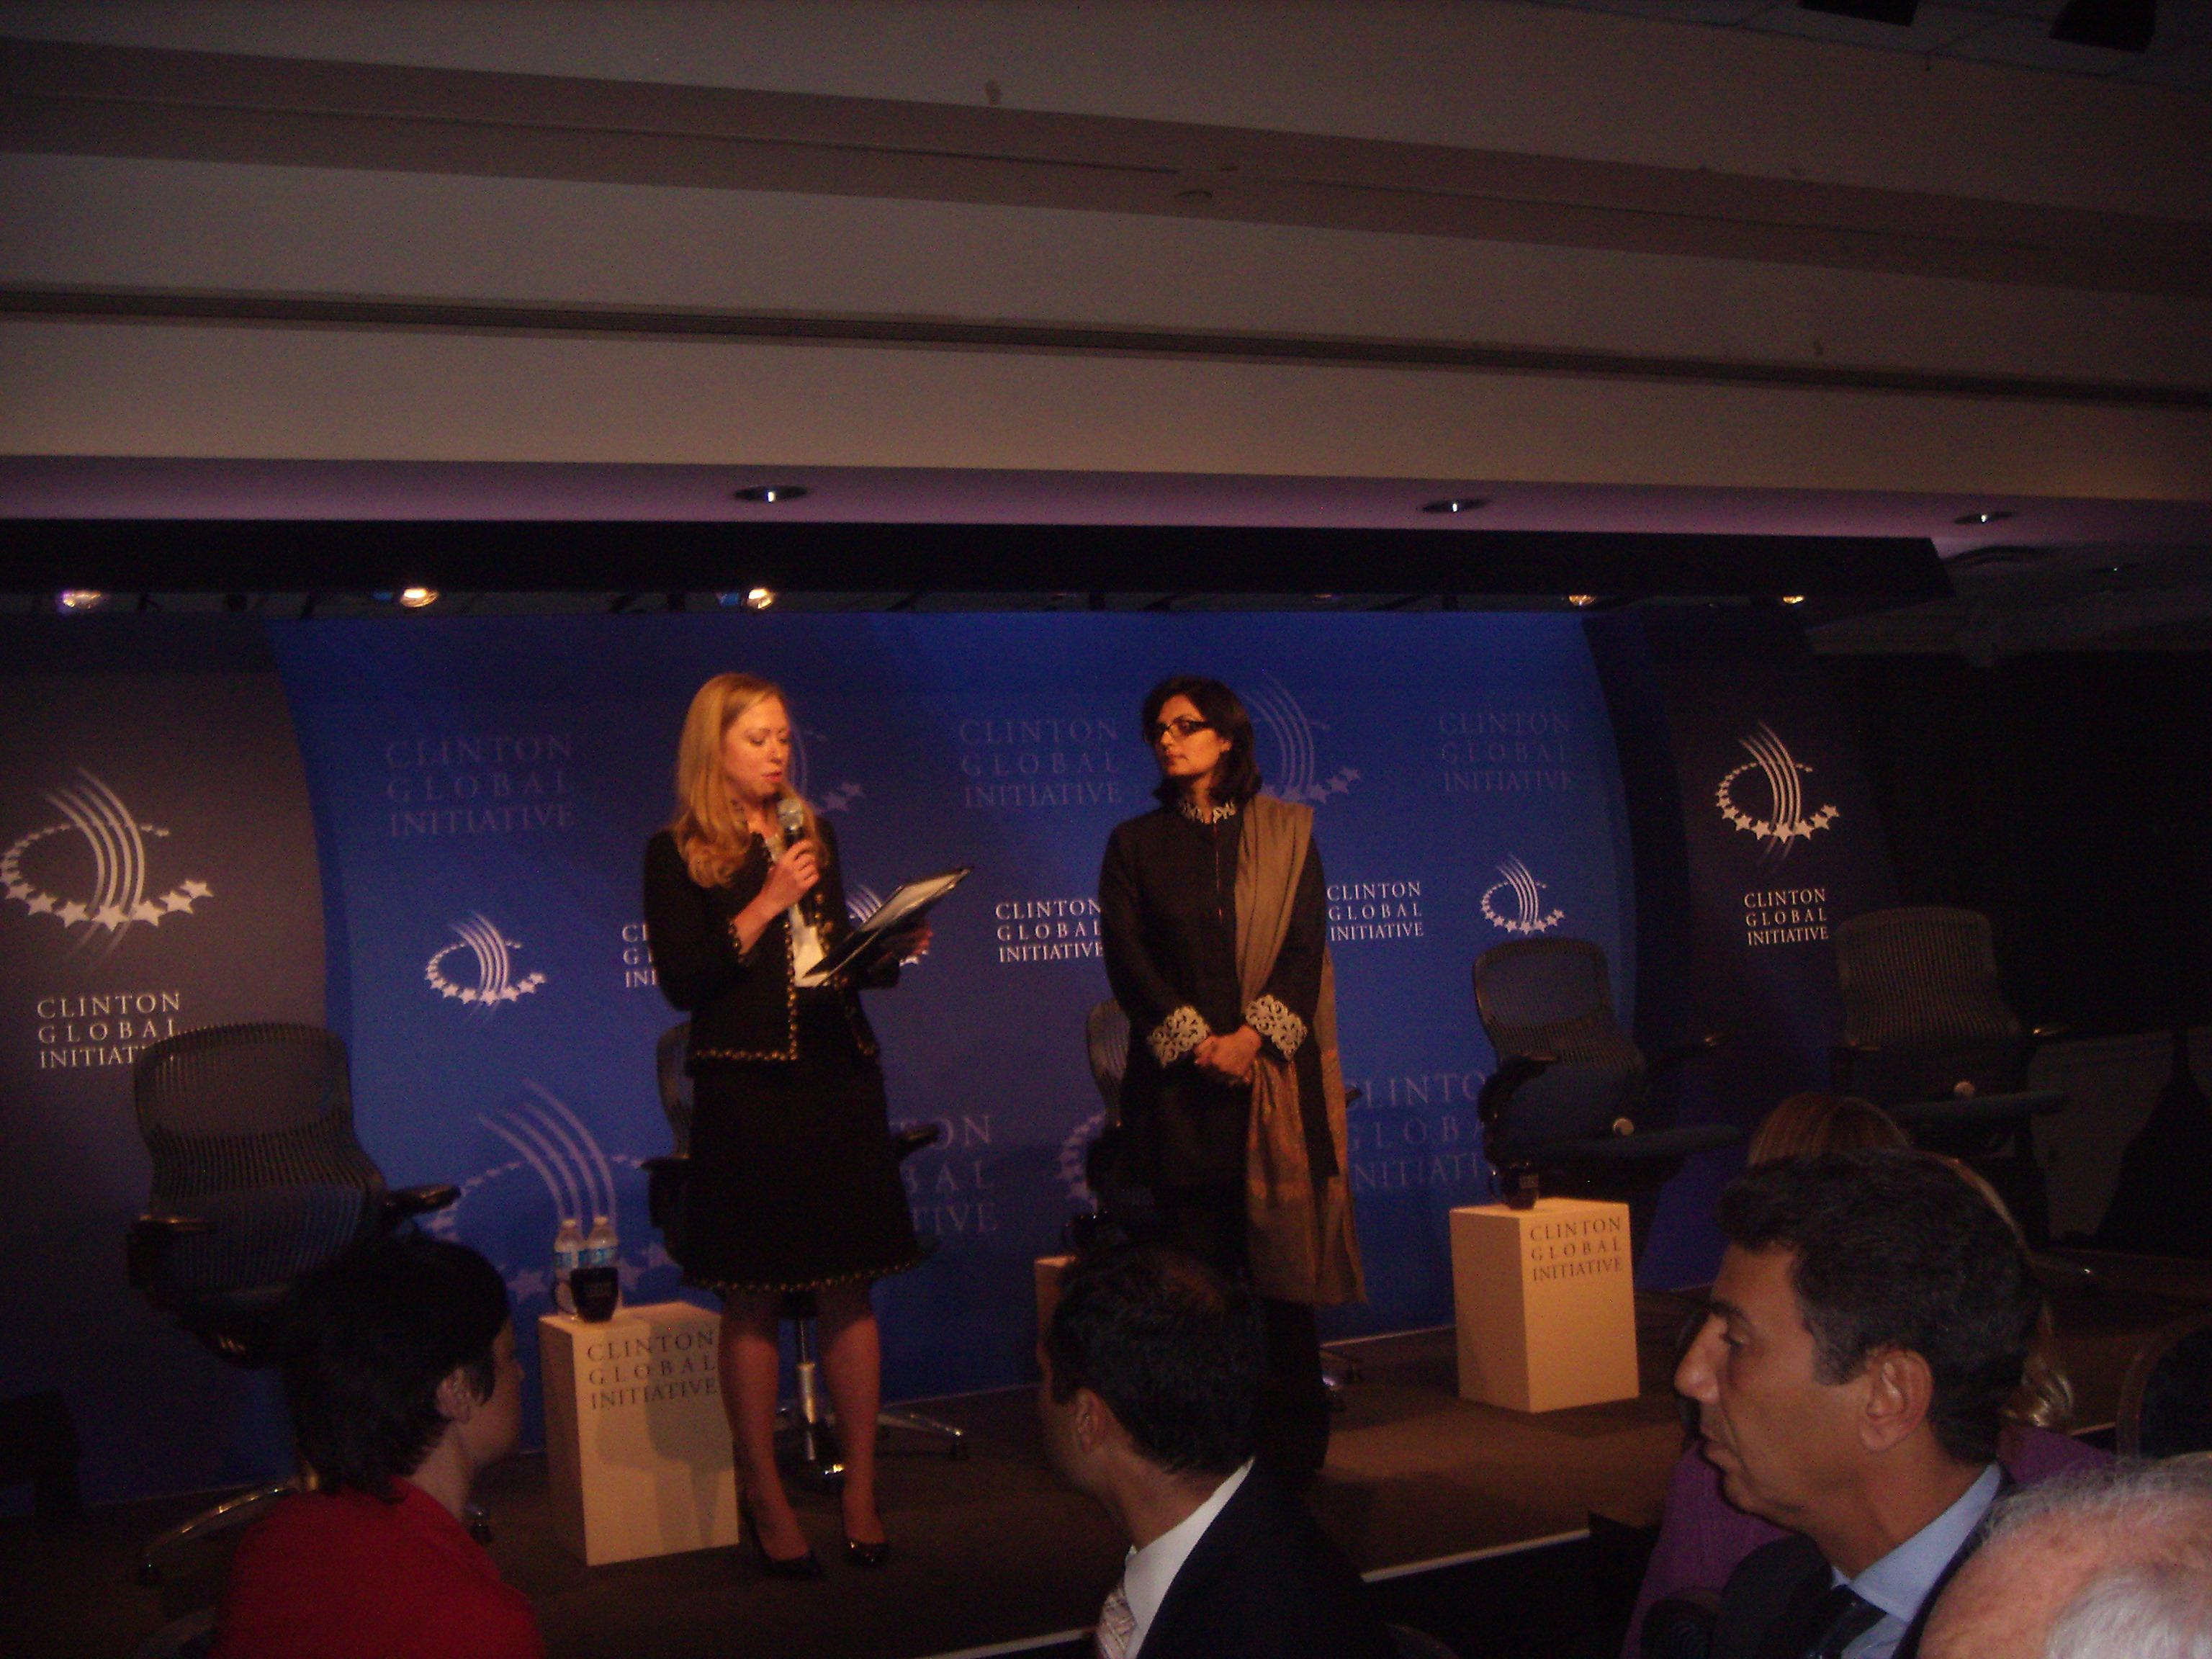 HEARTFILE AT THE CLINTON GLOBAL INITIATIVE 2011